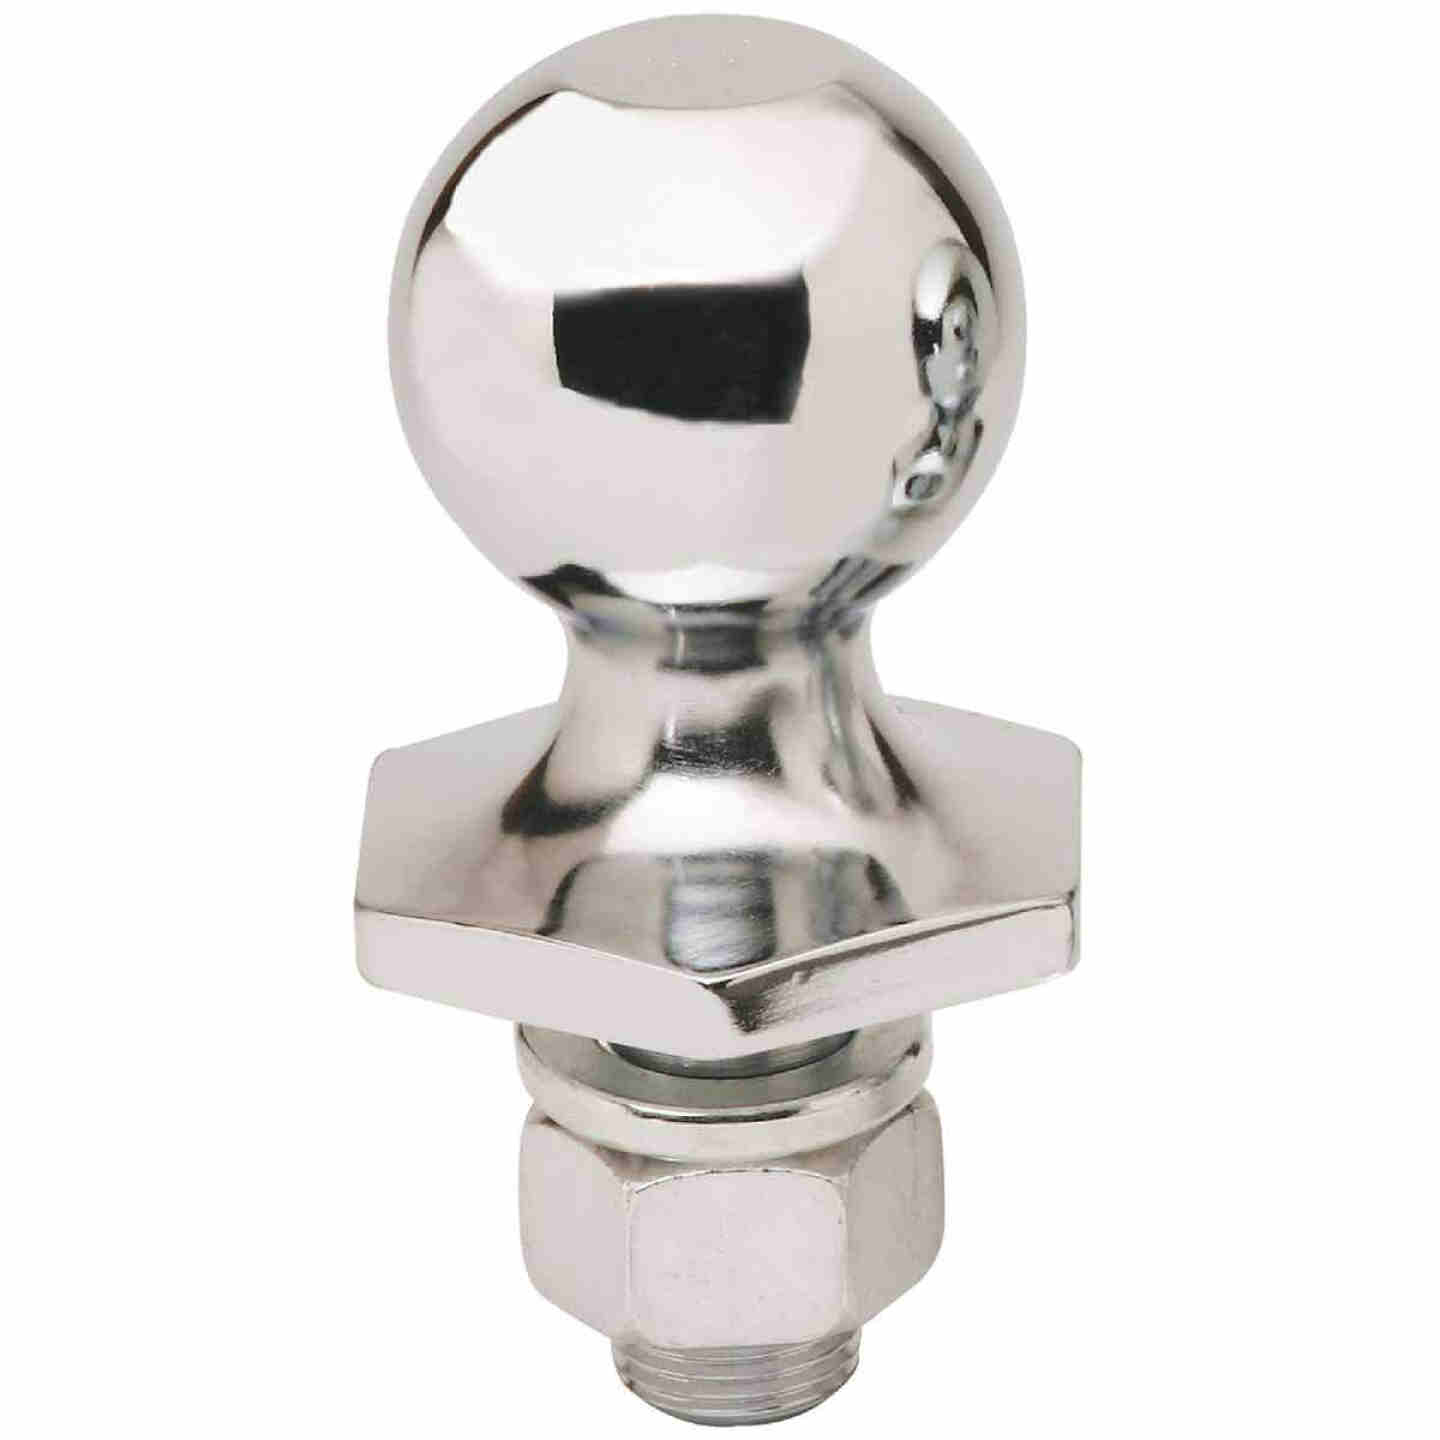 Reese Towpower Class I Interlock Hitch Ball, 1-7/8 In. x 1 In. x 2 In. Image 1